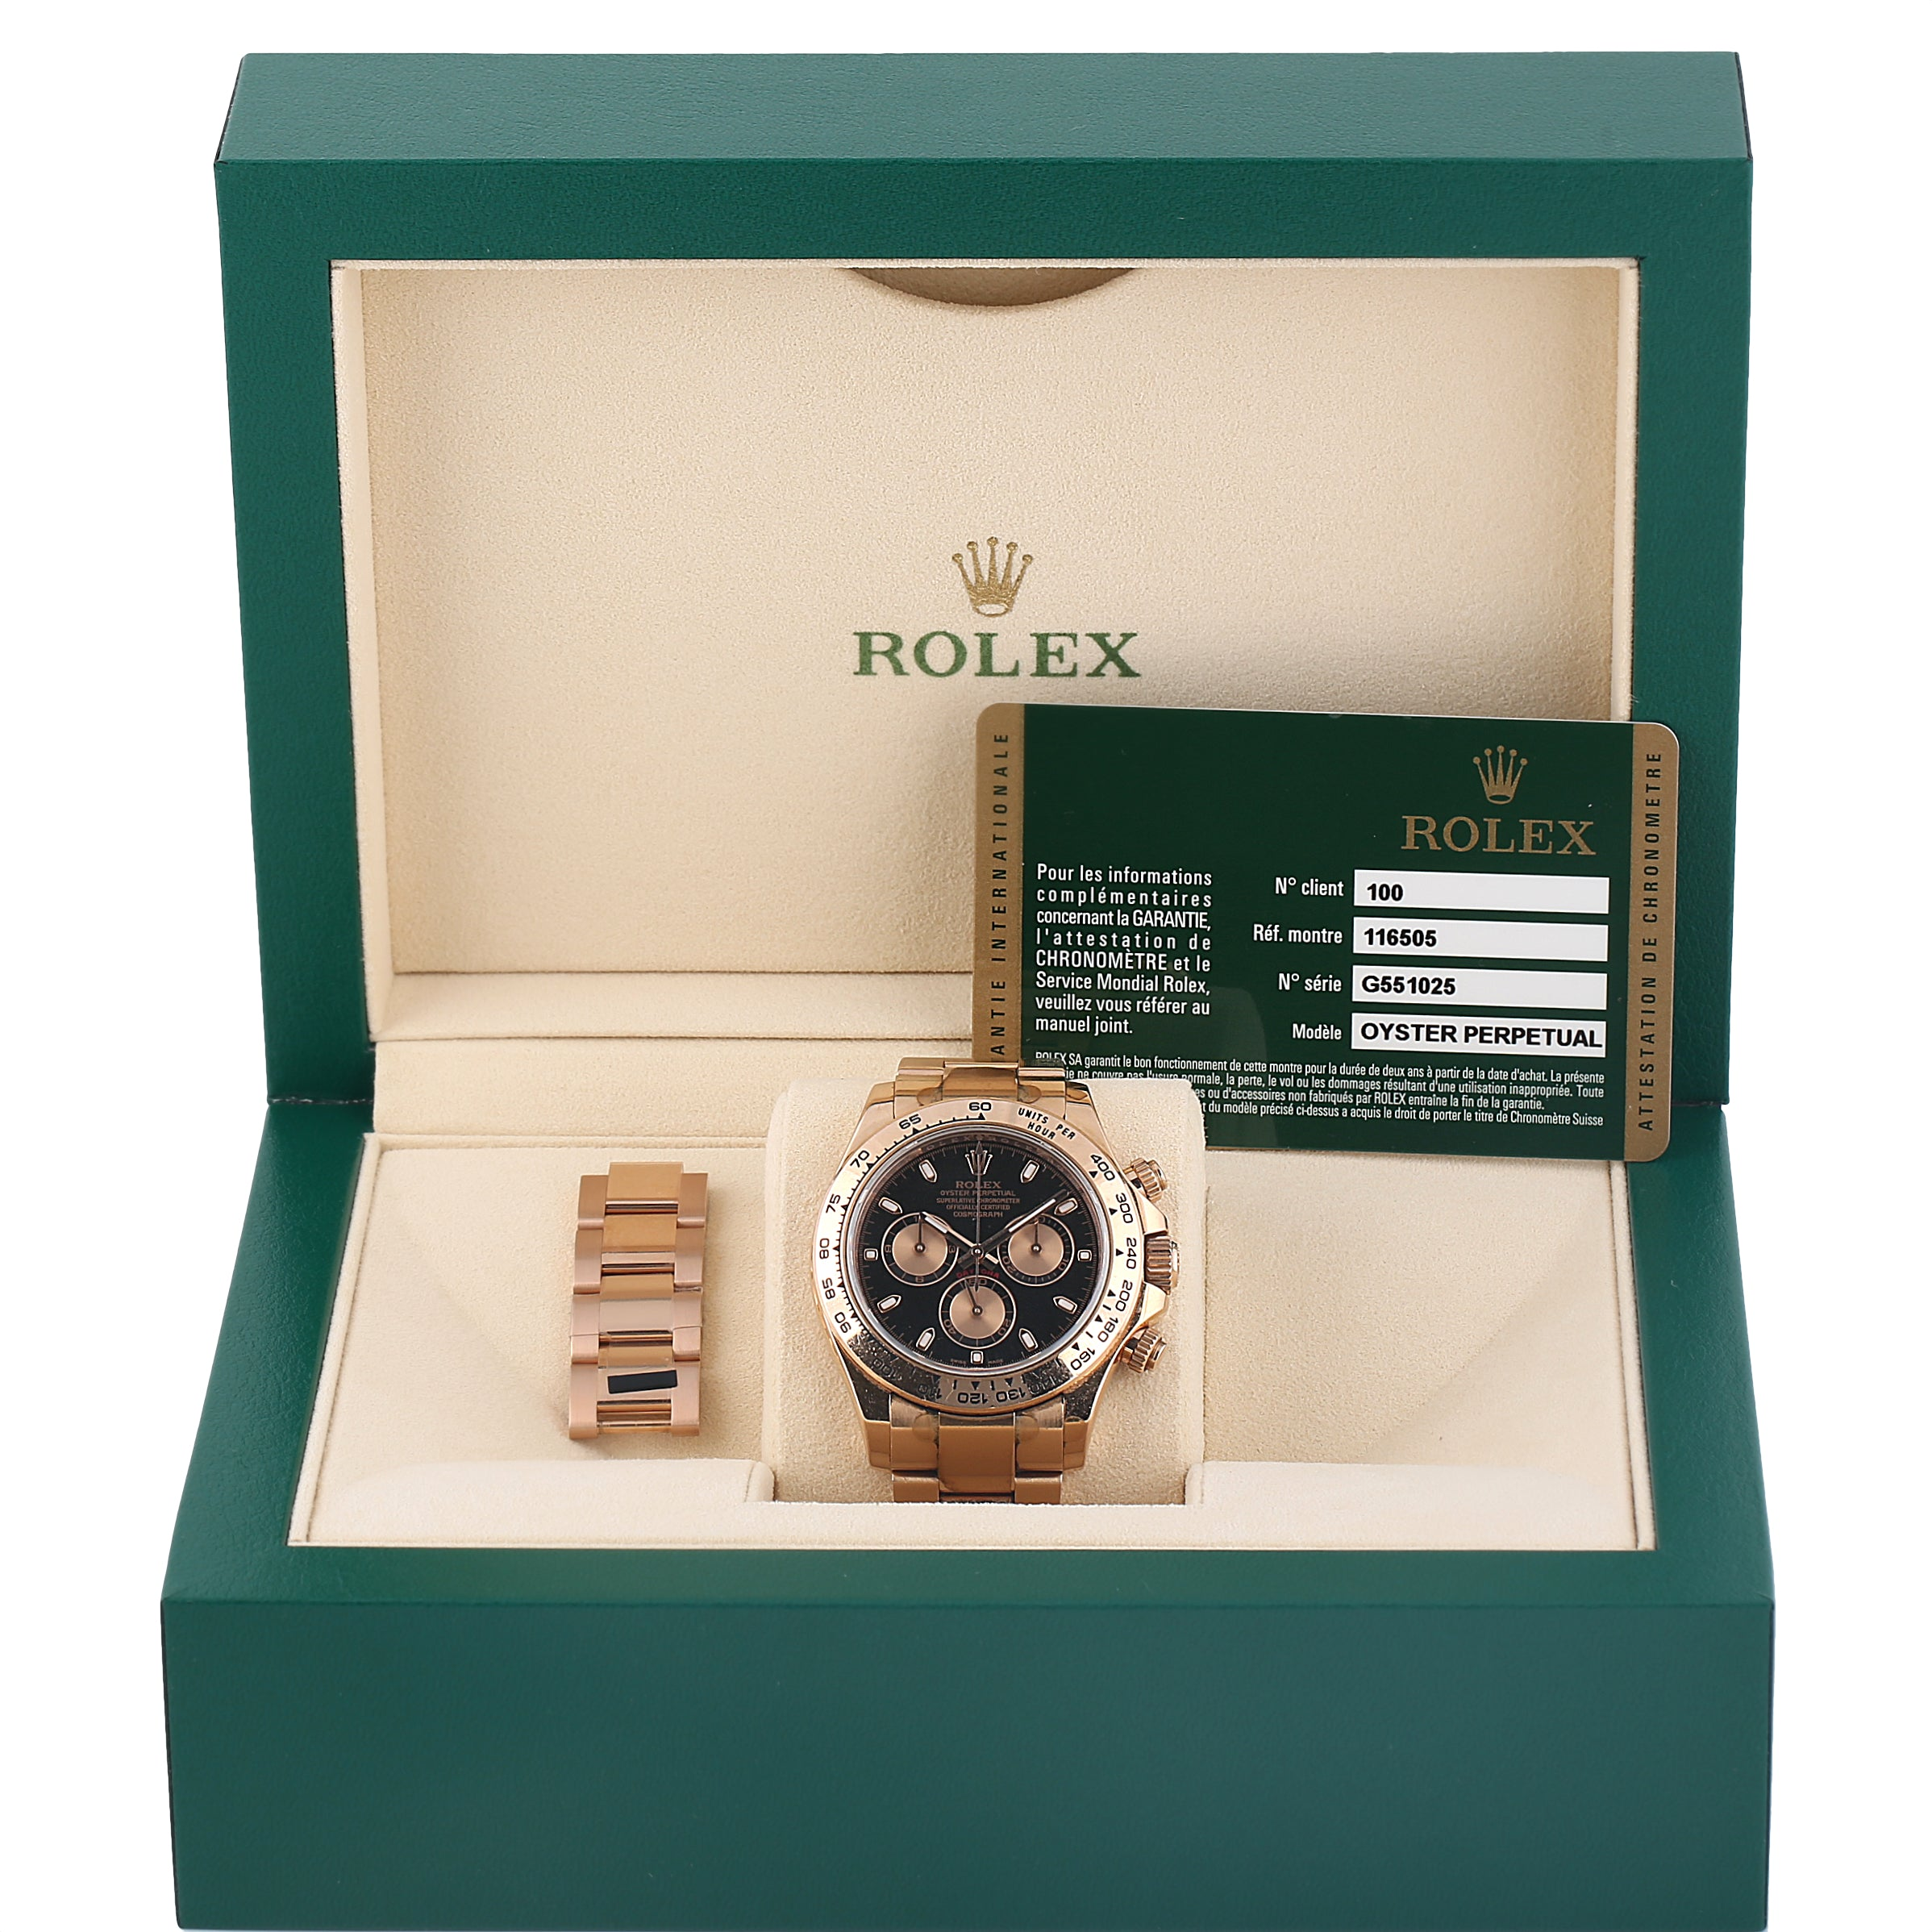 Rolex Oyster Perpetual Daytona everose gold G serial ref 116505 box & papers. - Terrafinejewelry